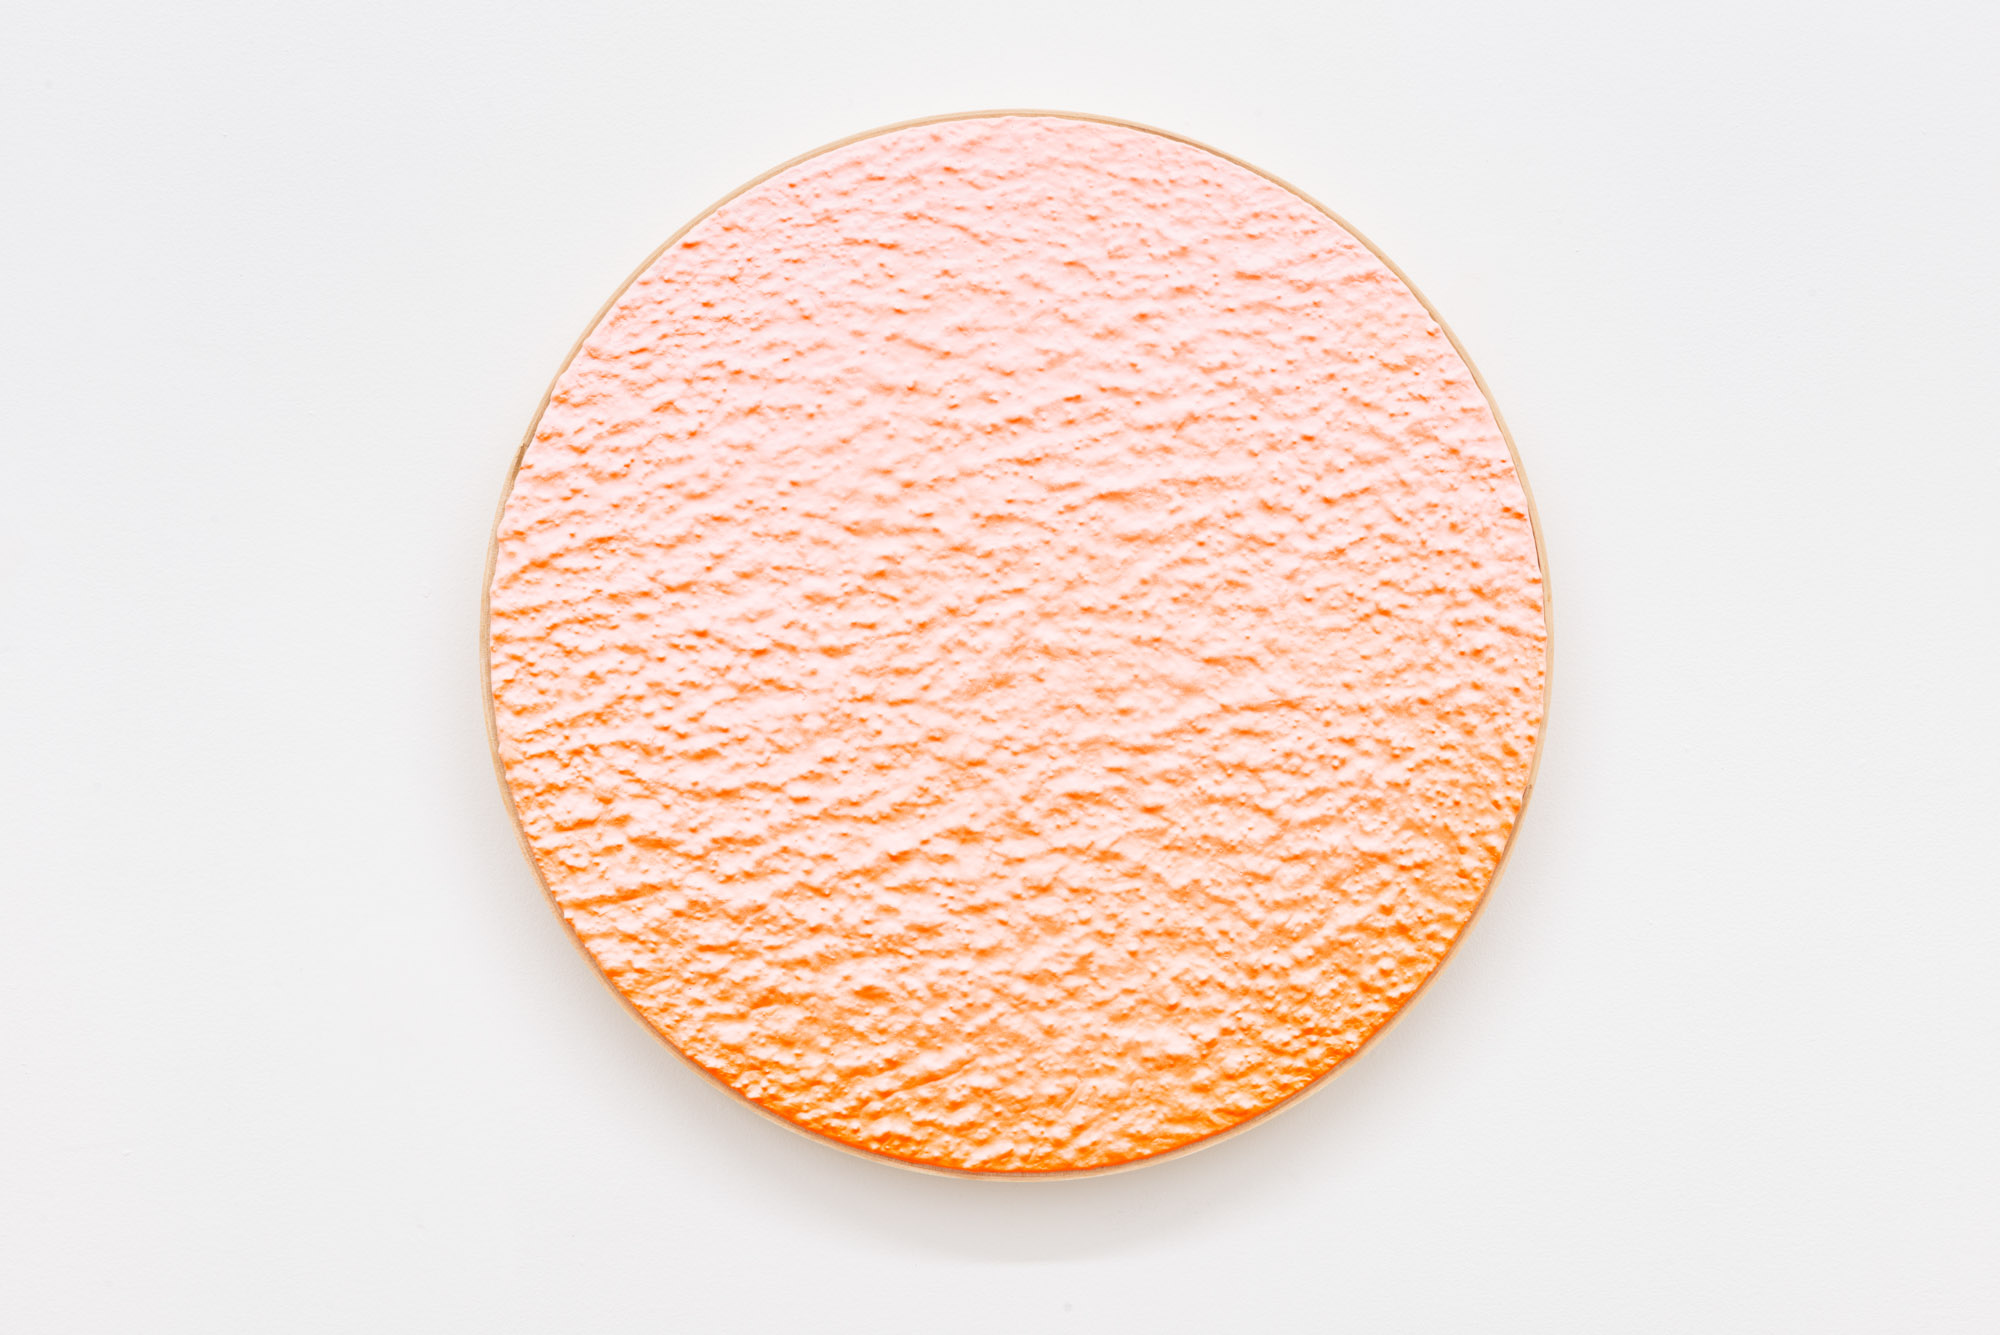 """Pierre Julien,  In the Deepest Oceans  - B007, 2018, stucco, acrylic and spray paint on wood panel, 16"""" diameter (41 cm)"""